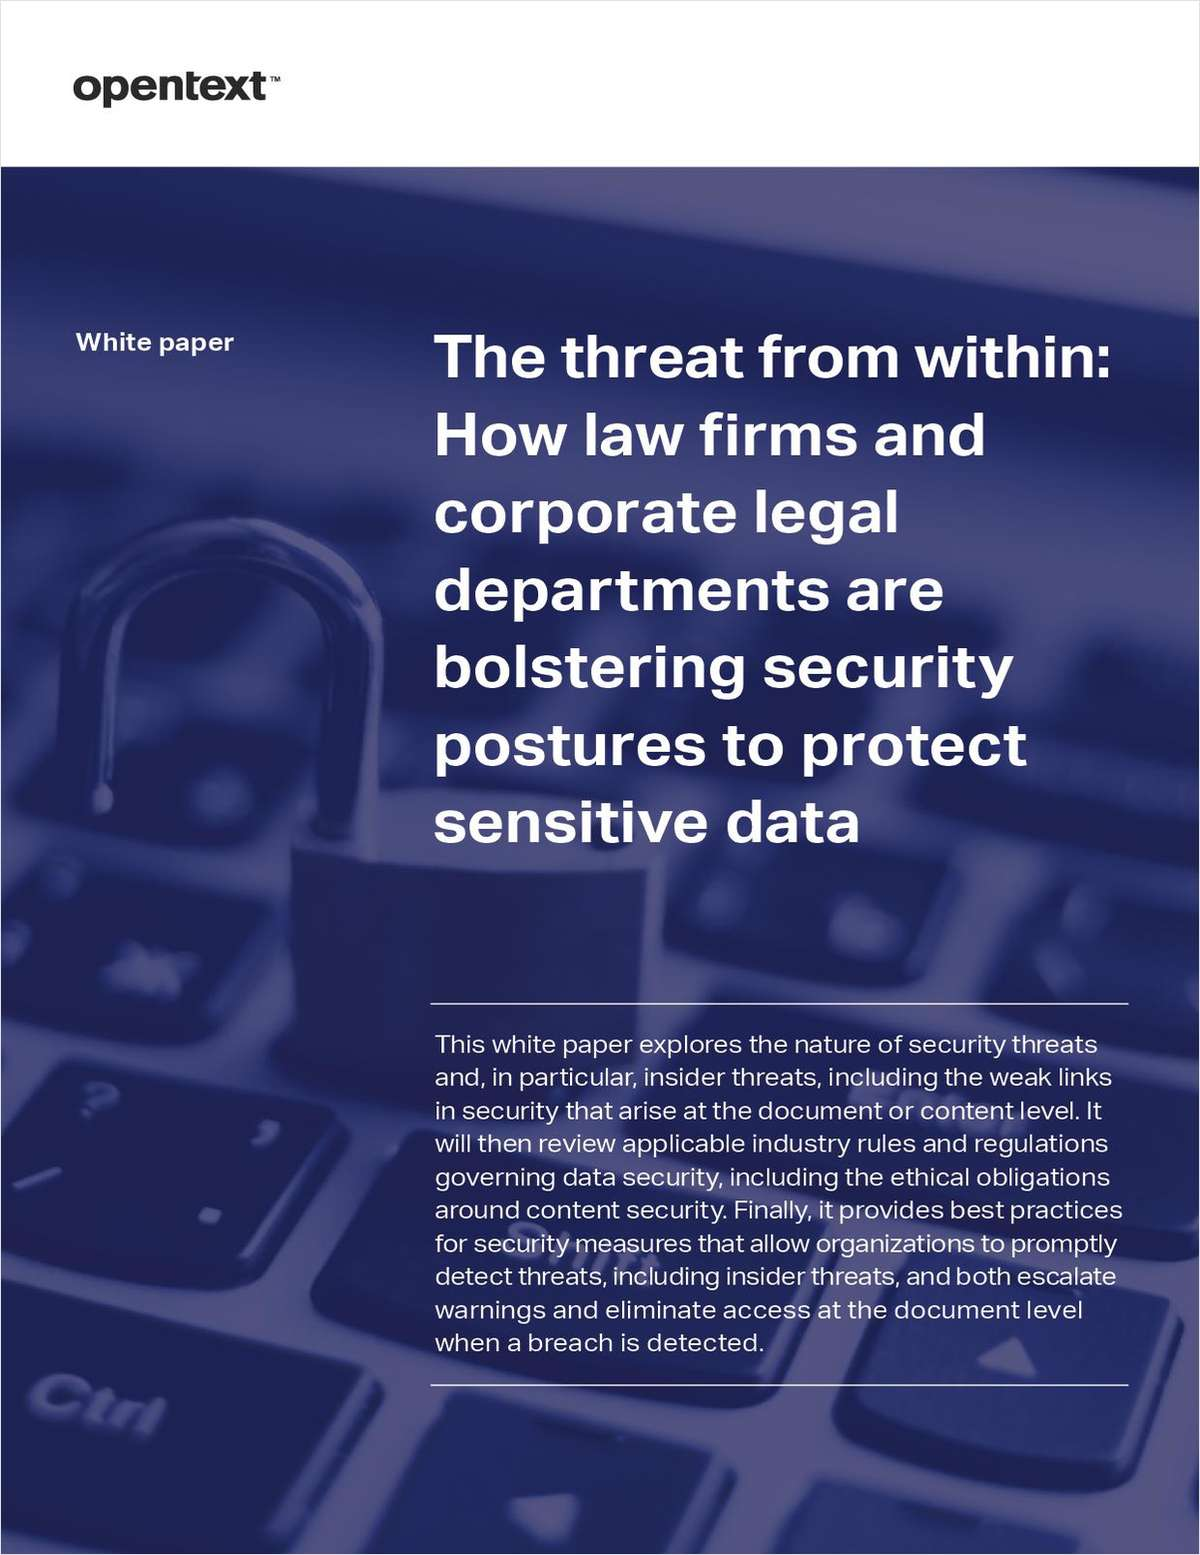 The threat from within: How law firms and corporate legal departments are bolstering security postures to protect sensitive data